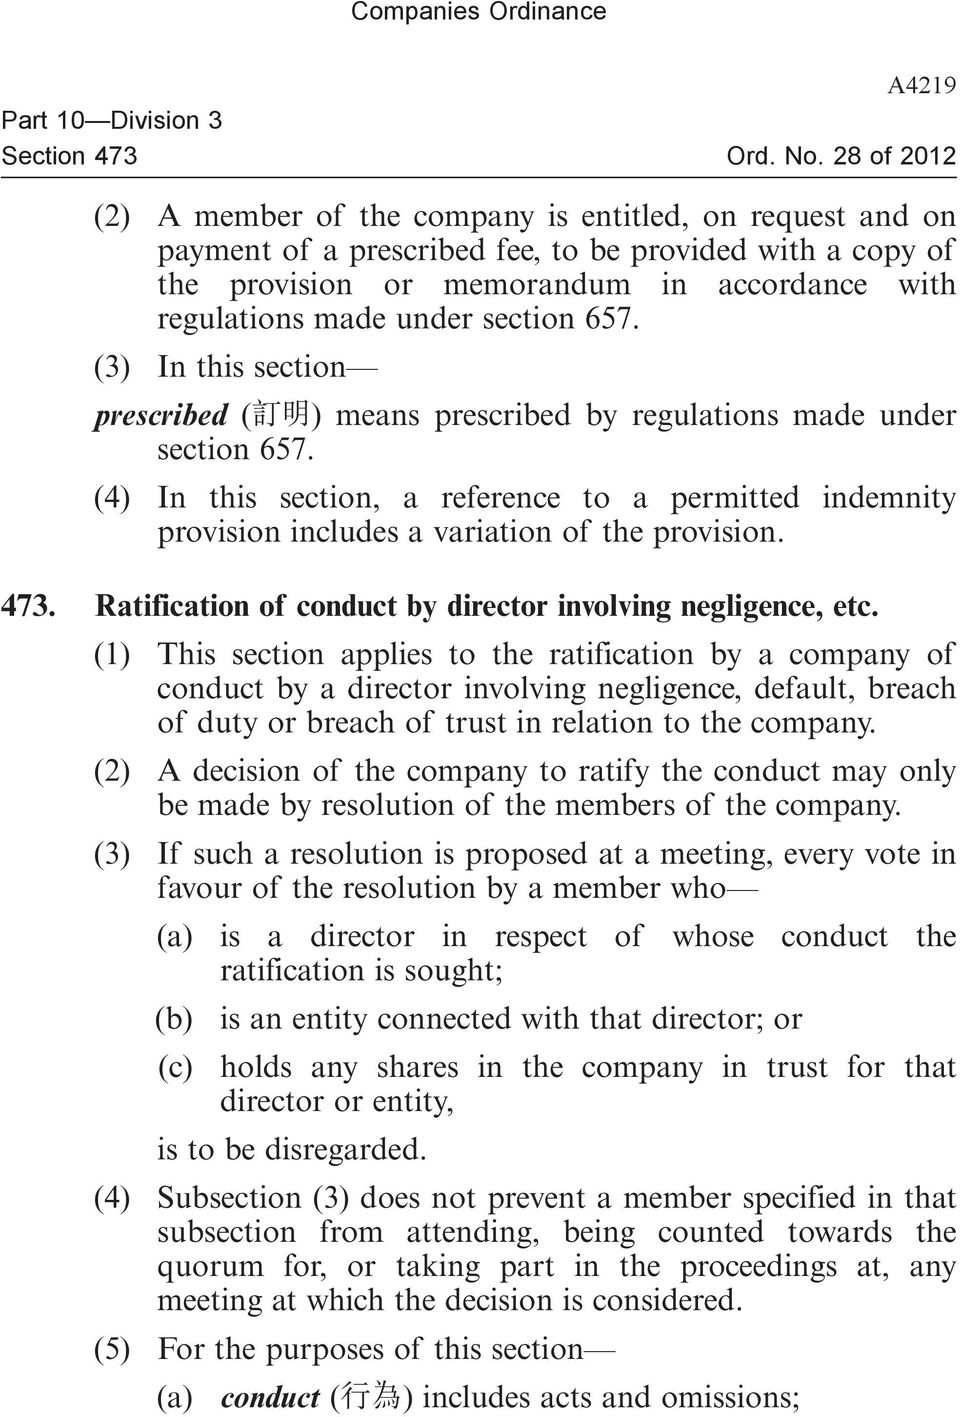 (4) In this section, a reference to a permitted indemnity provision includes a variation of the provision. 473. Ratification of conduct by director involving negligence, etc.